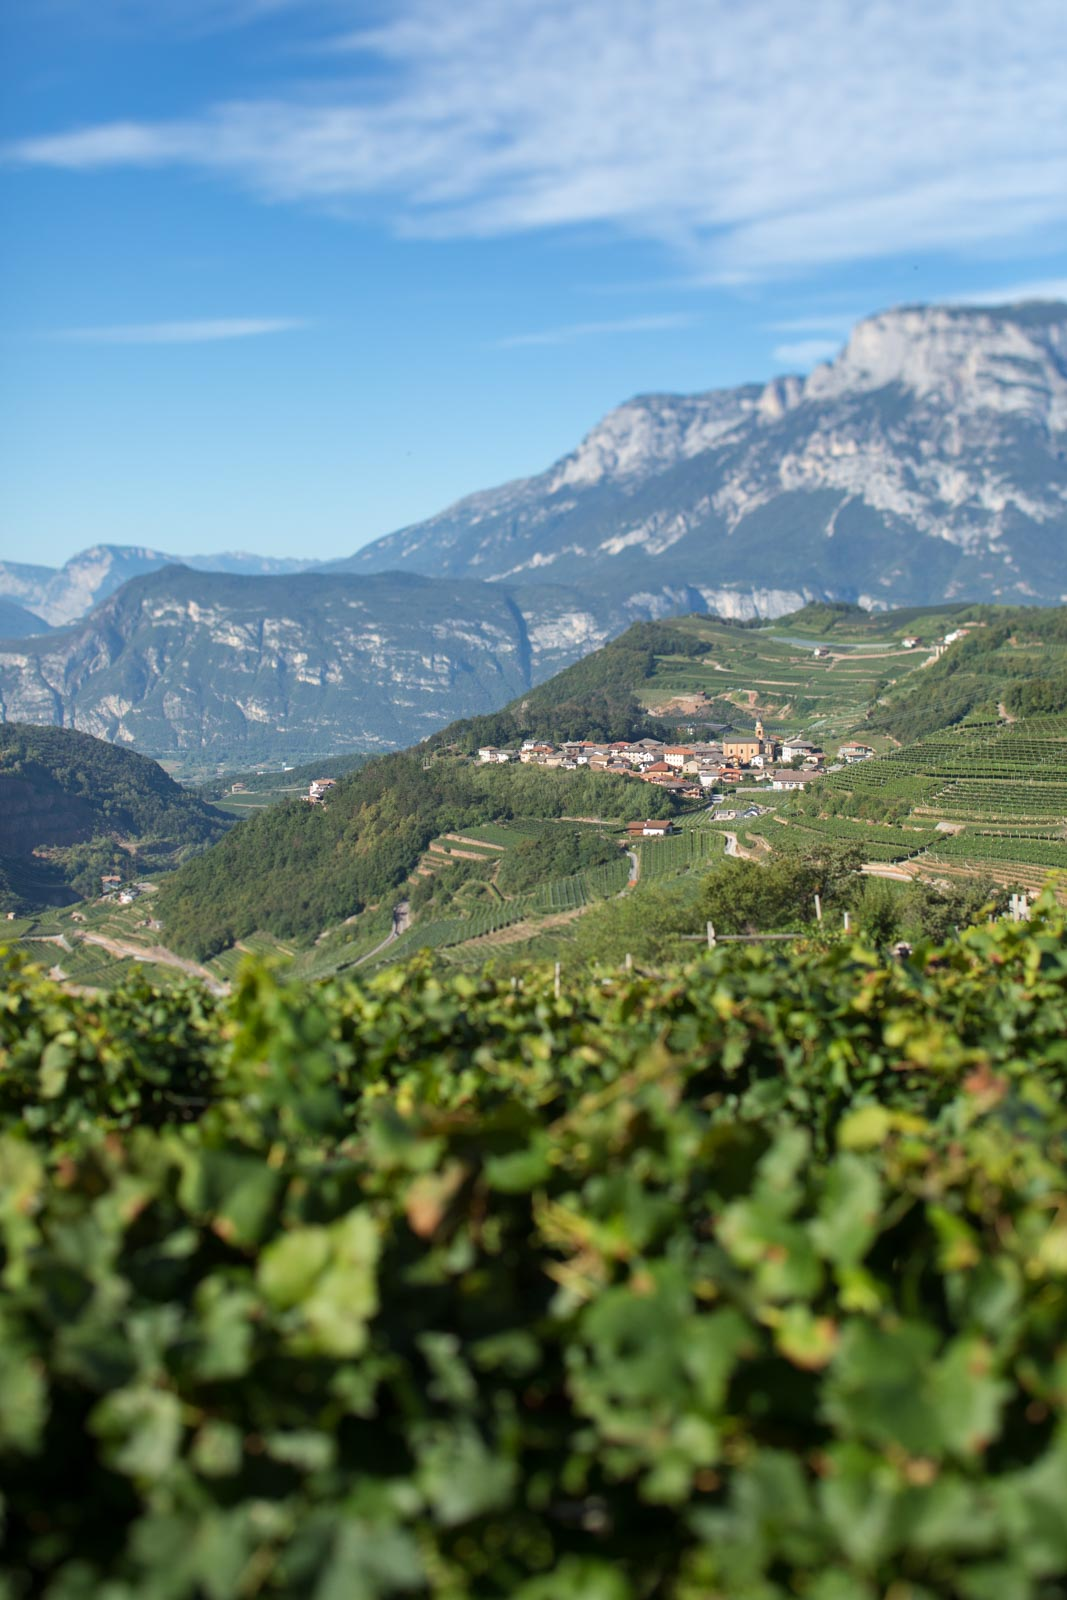 The village of Palù di Giovo in the Val di Cembra, where Cesarini Sforza sources many of its grapes. ©Kevin Day/Opening a Bottle